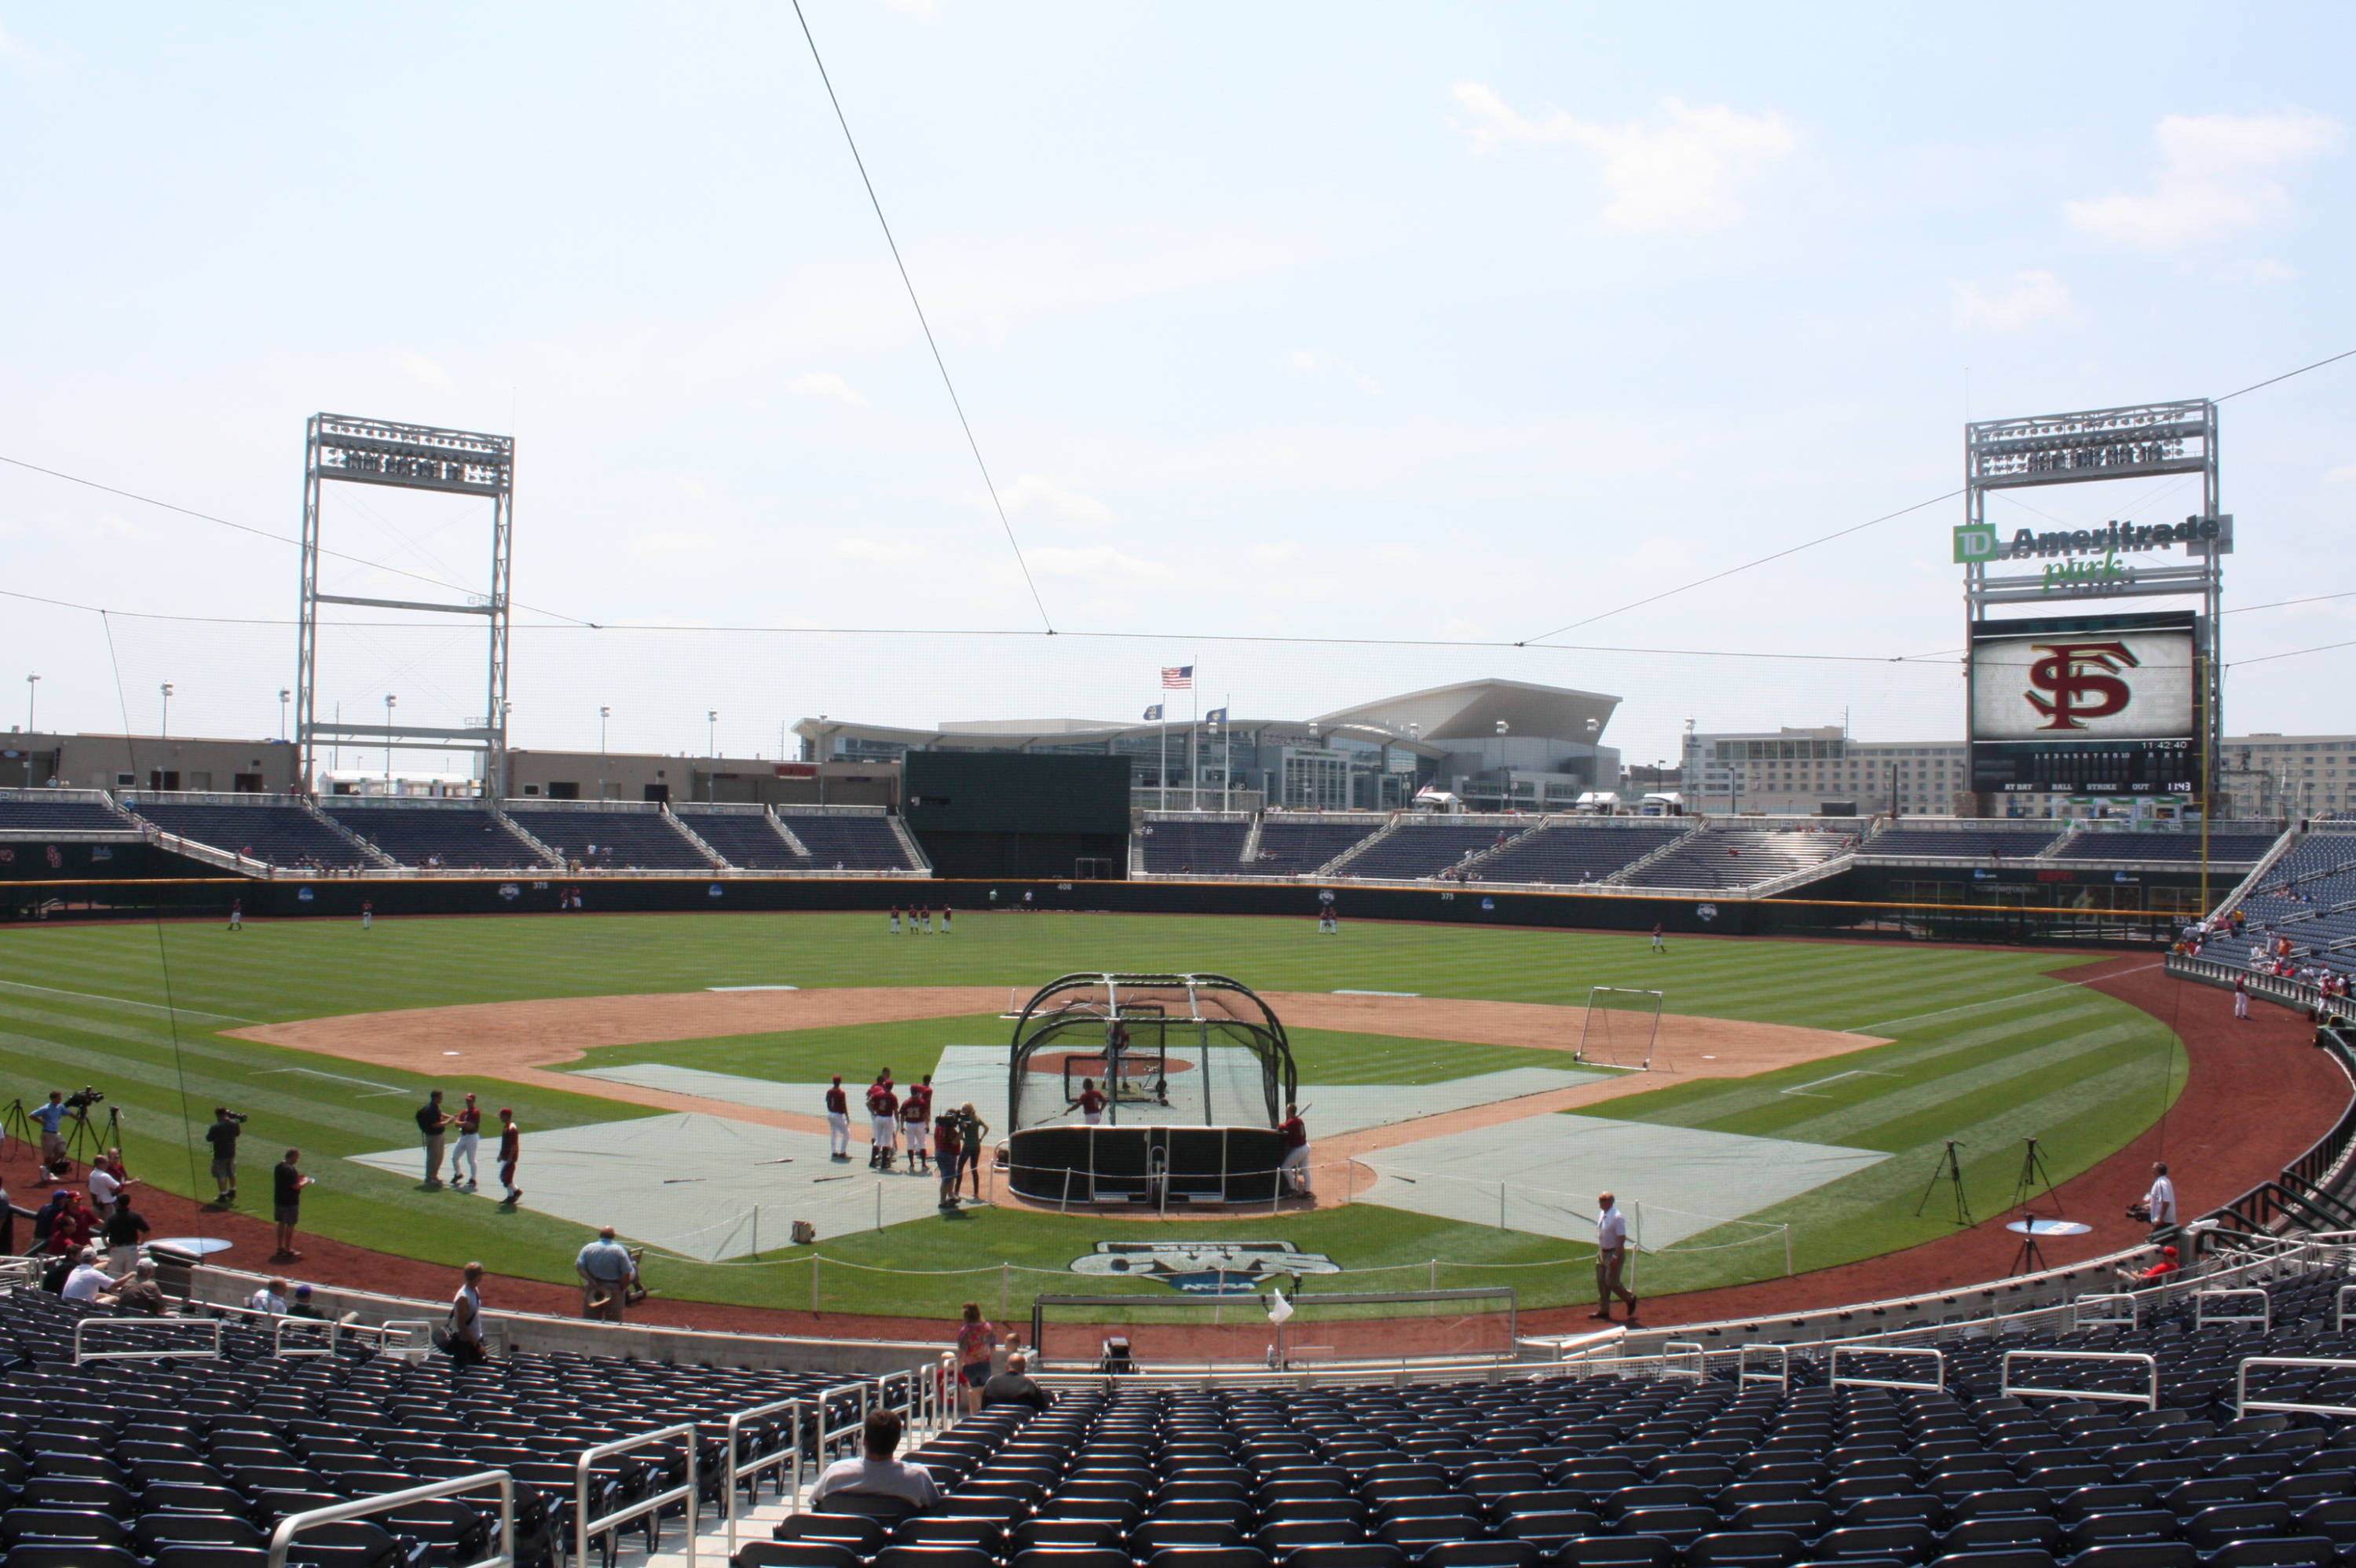 TD Ameritrade Park Omaha - home of the College World Series